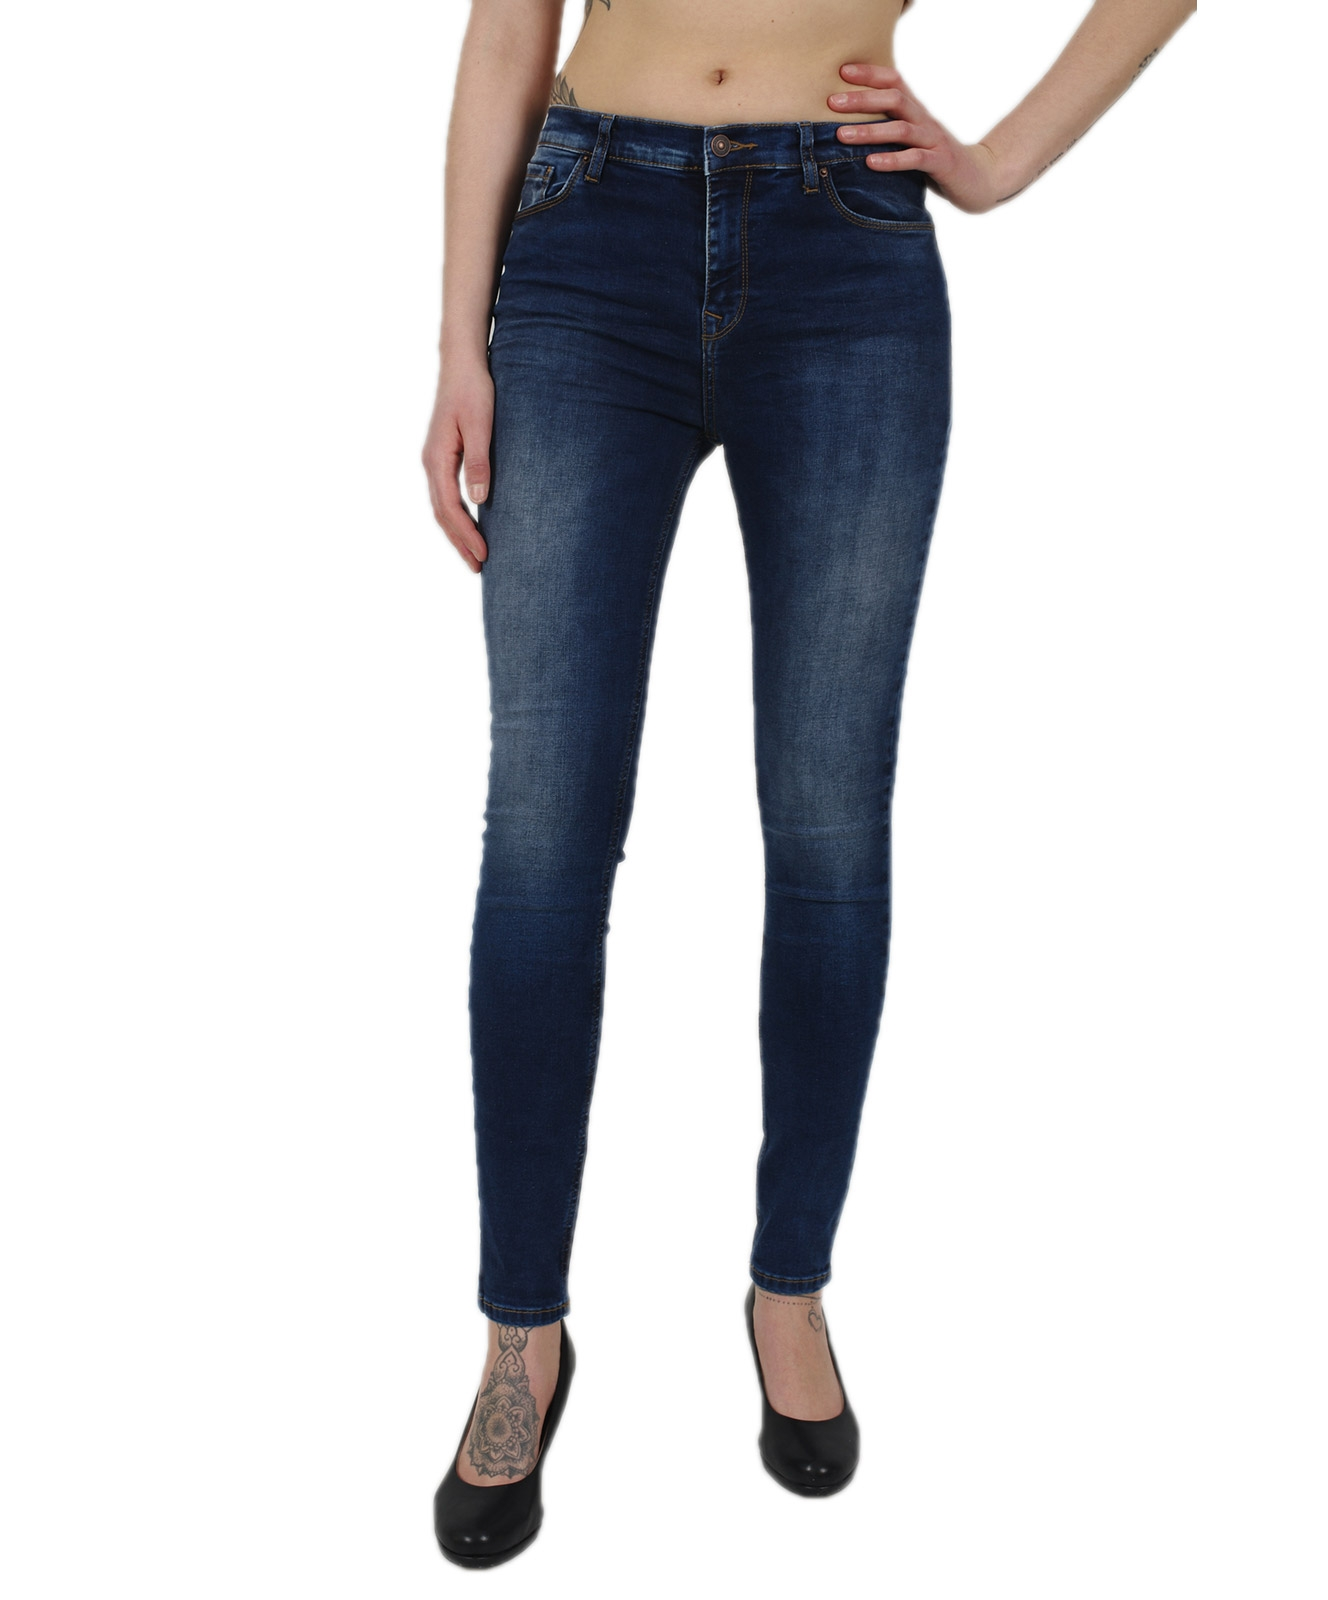 Hosen - LTB Ankle Jeans Amy in Ikeda Wash  - Onlineshop Jeans Meile